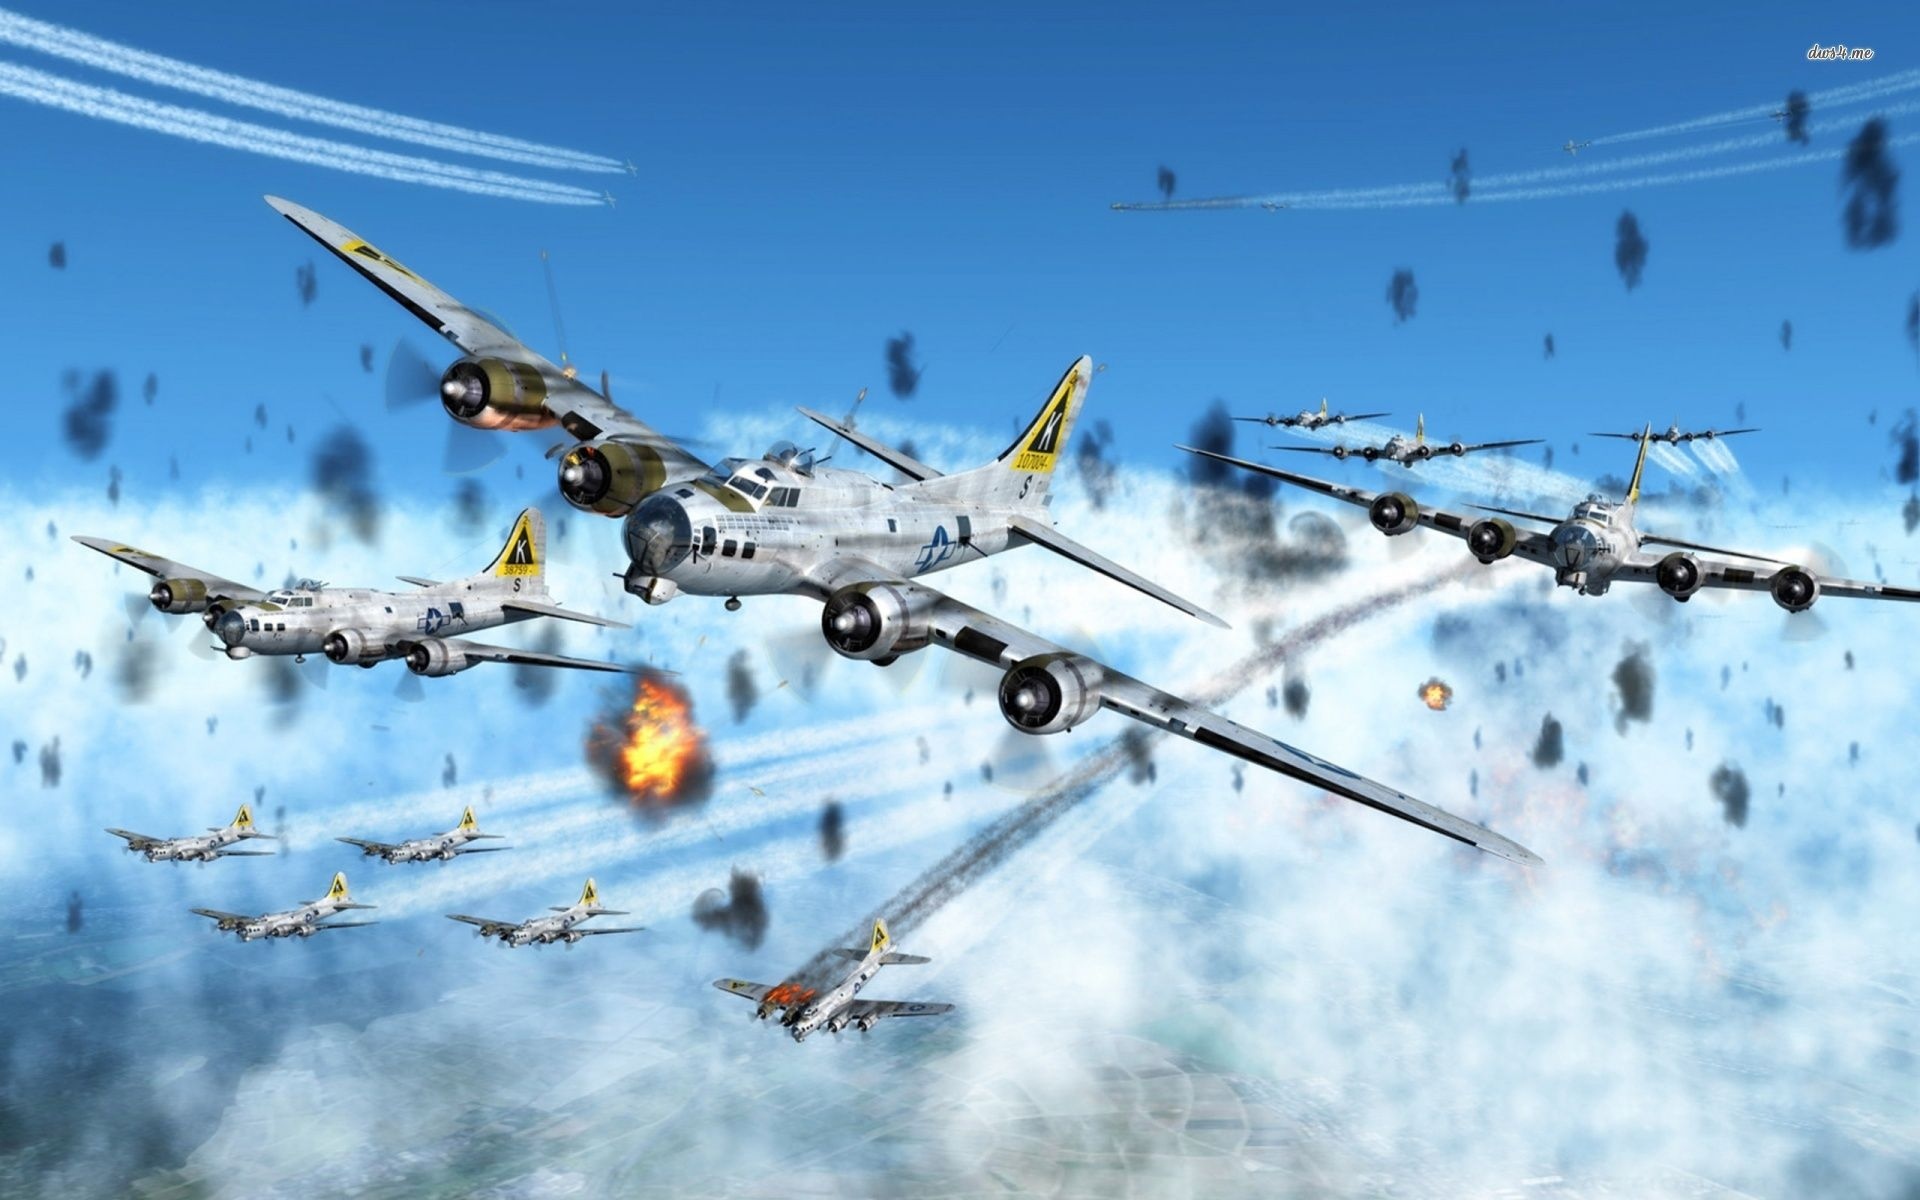 K on tail 447th ww2 bomber b17 pictures art   Boeing B-17 Flying Fortress wallpaper